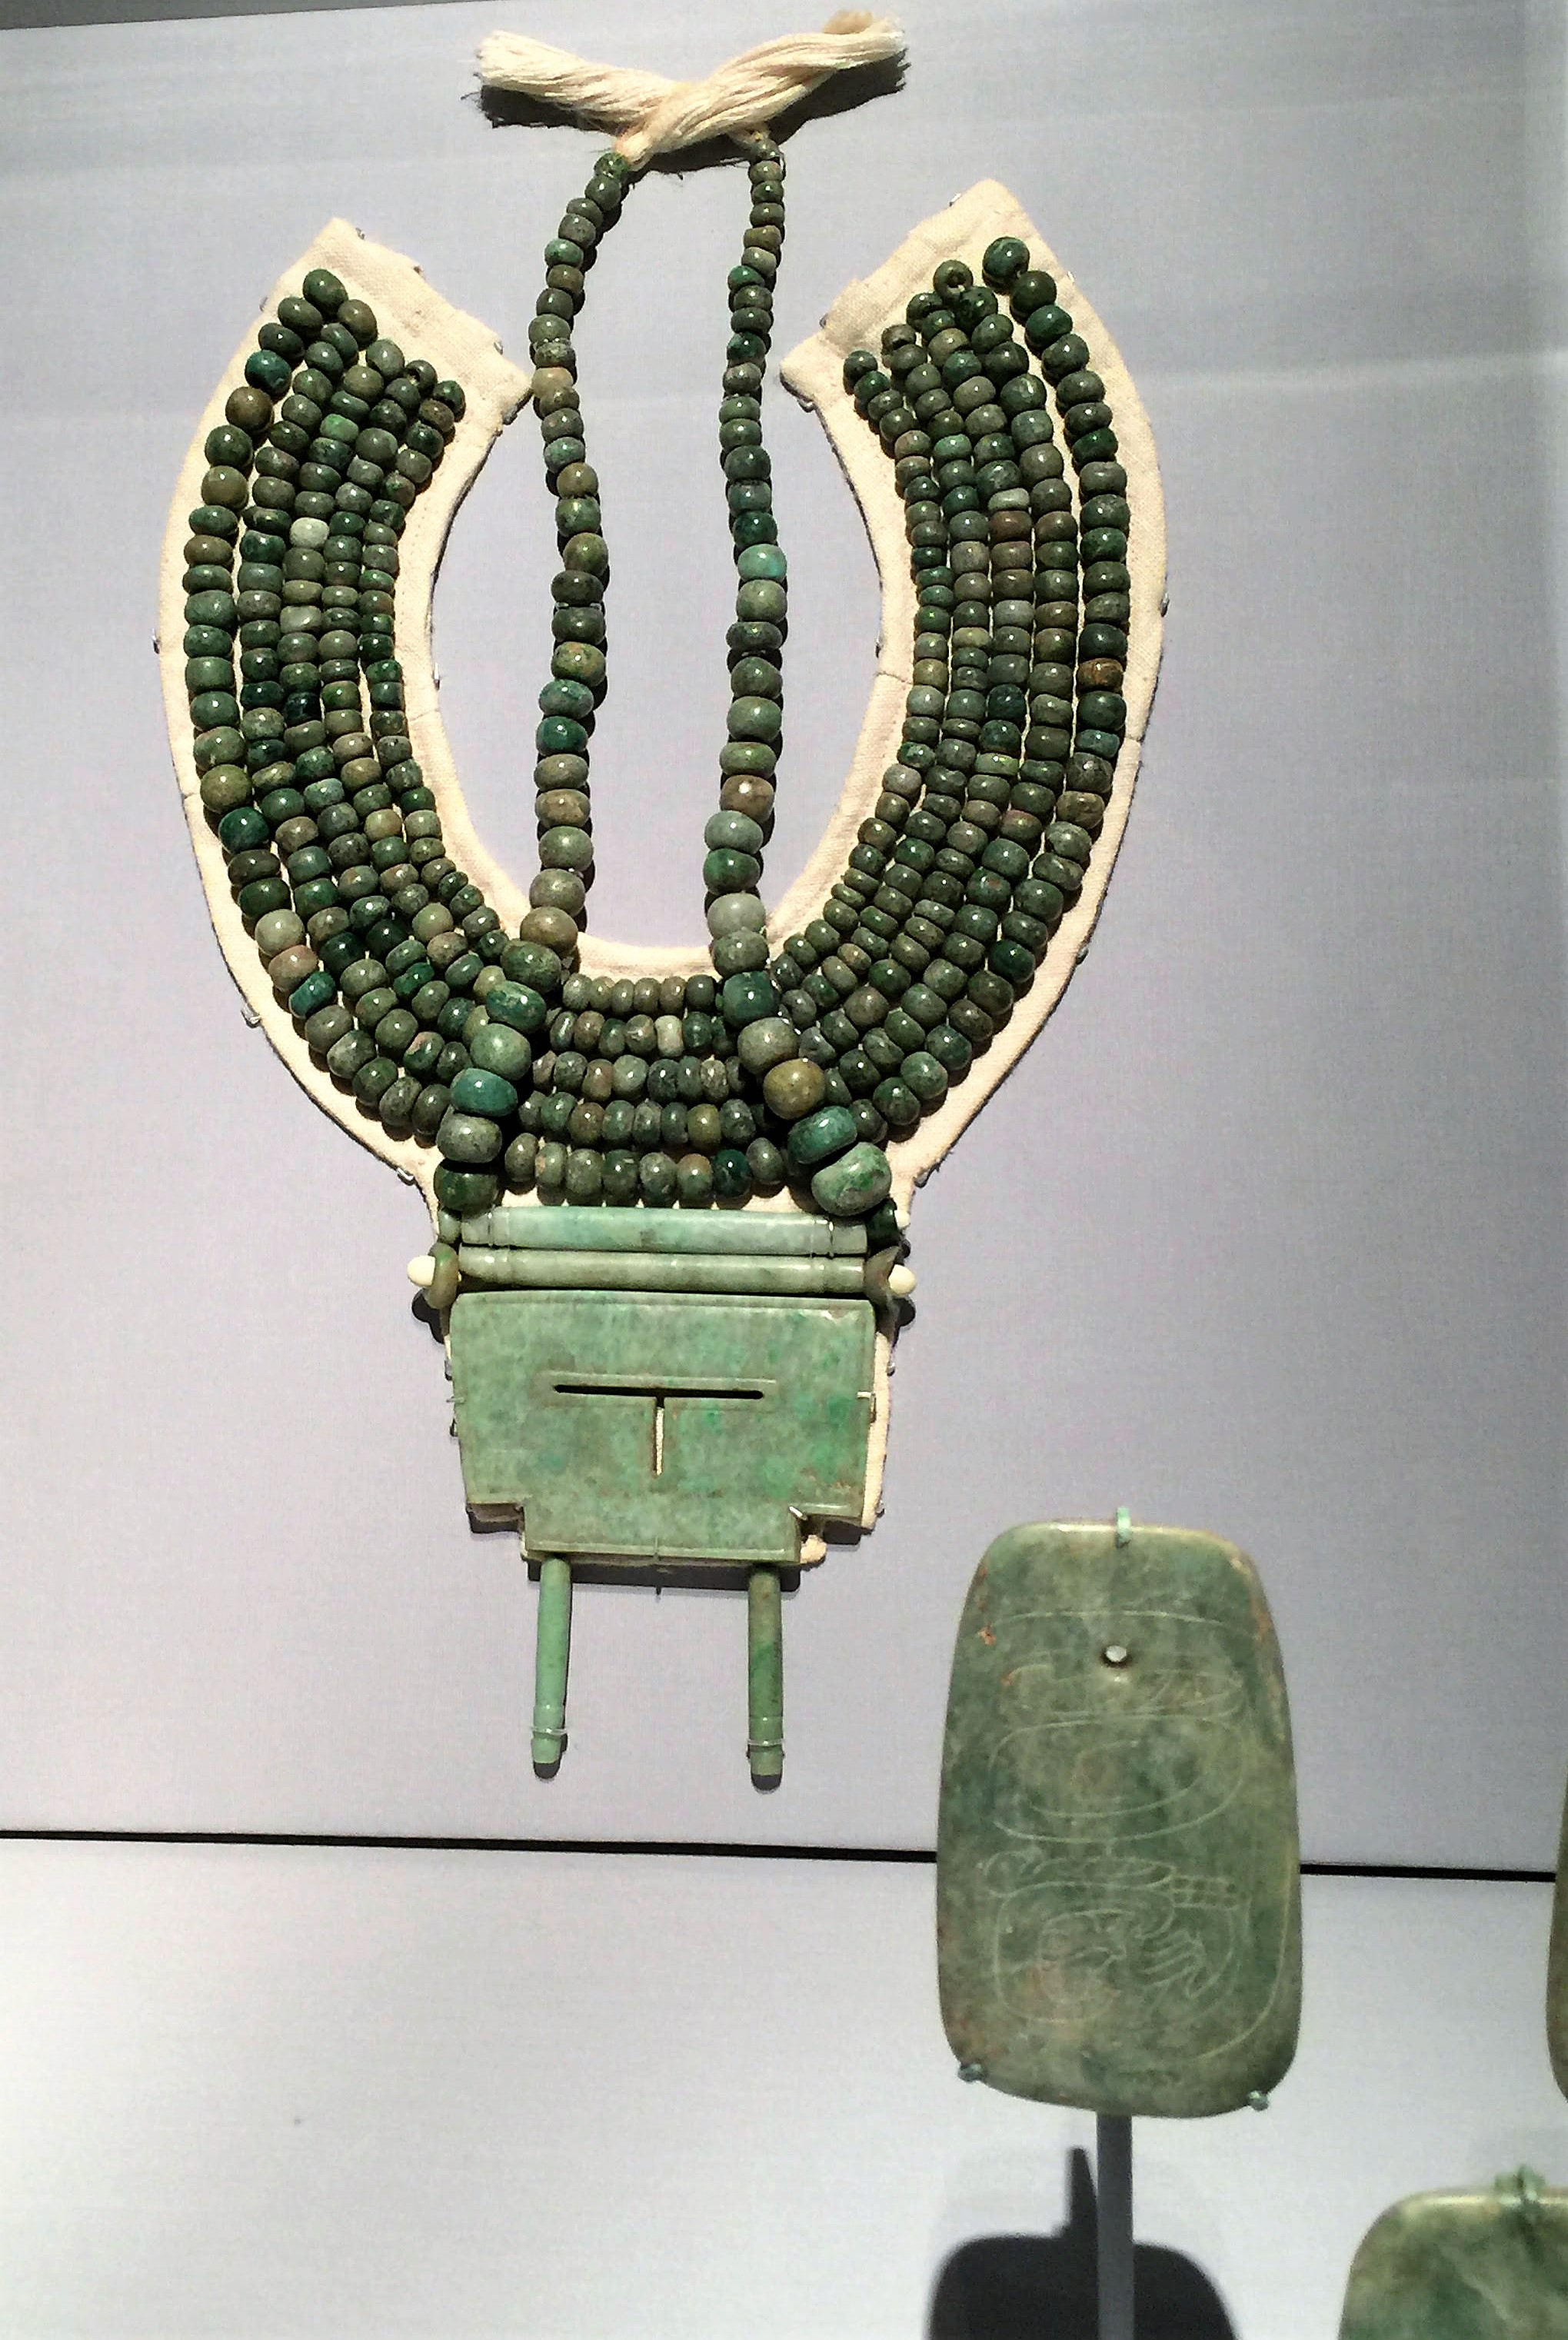 Highly prized by pre-Columbians civilization was jade. - This massive jade pectoral and necklace were part of an assemblage discovered in a tomb at Calakmul. The large plaque is in the shape of the hieroglyphic logogram for ik', meaning